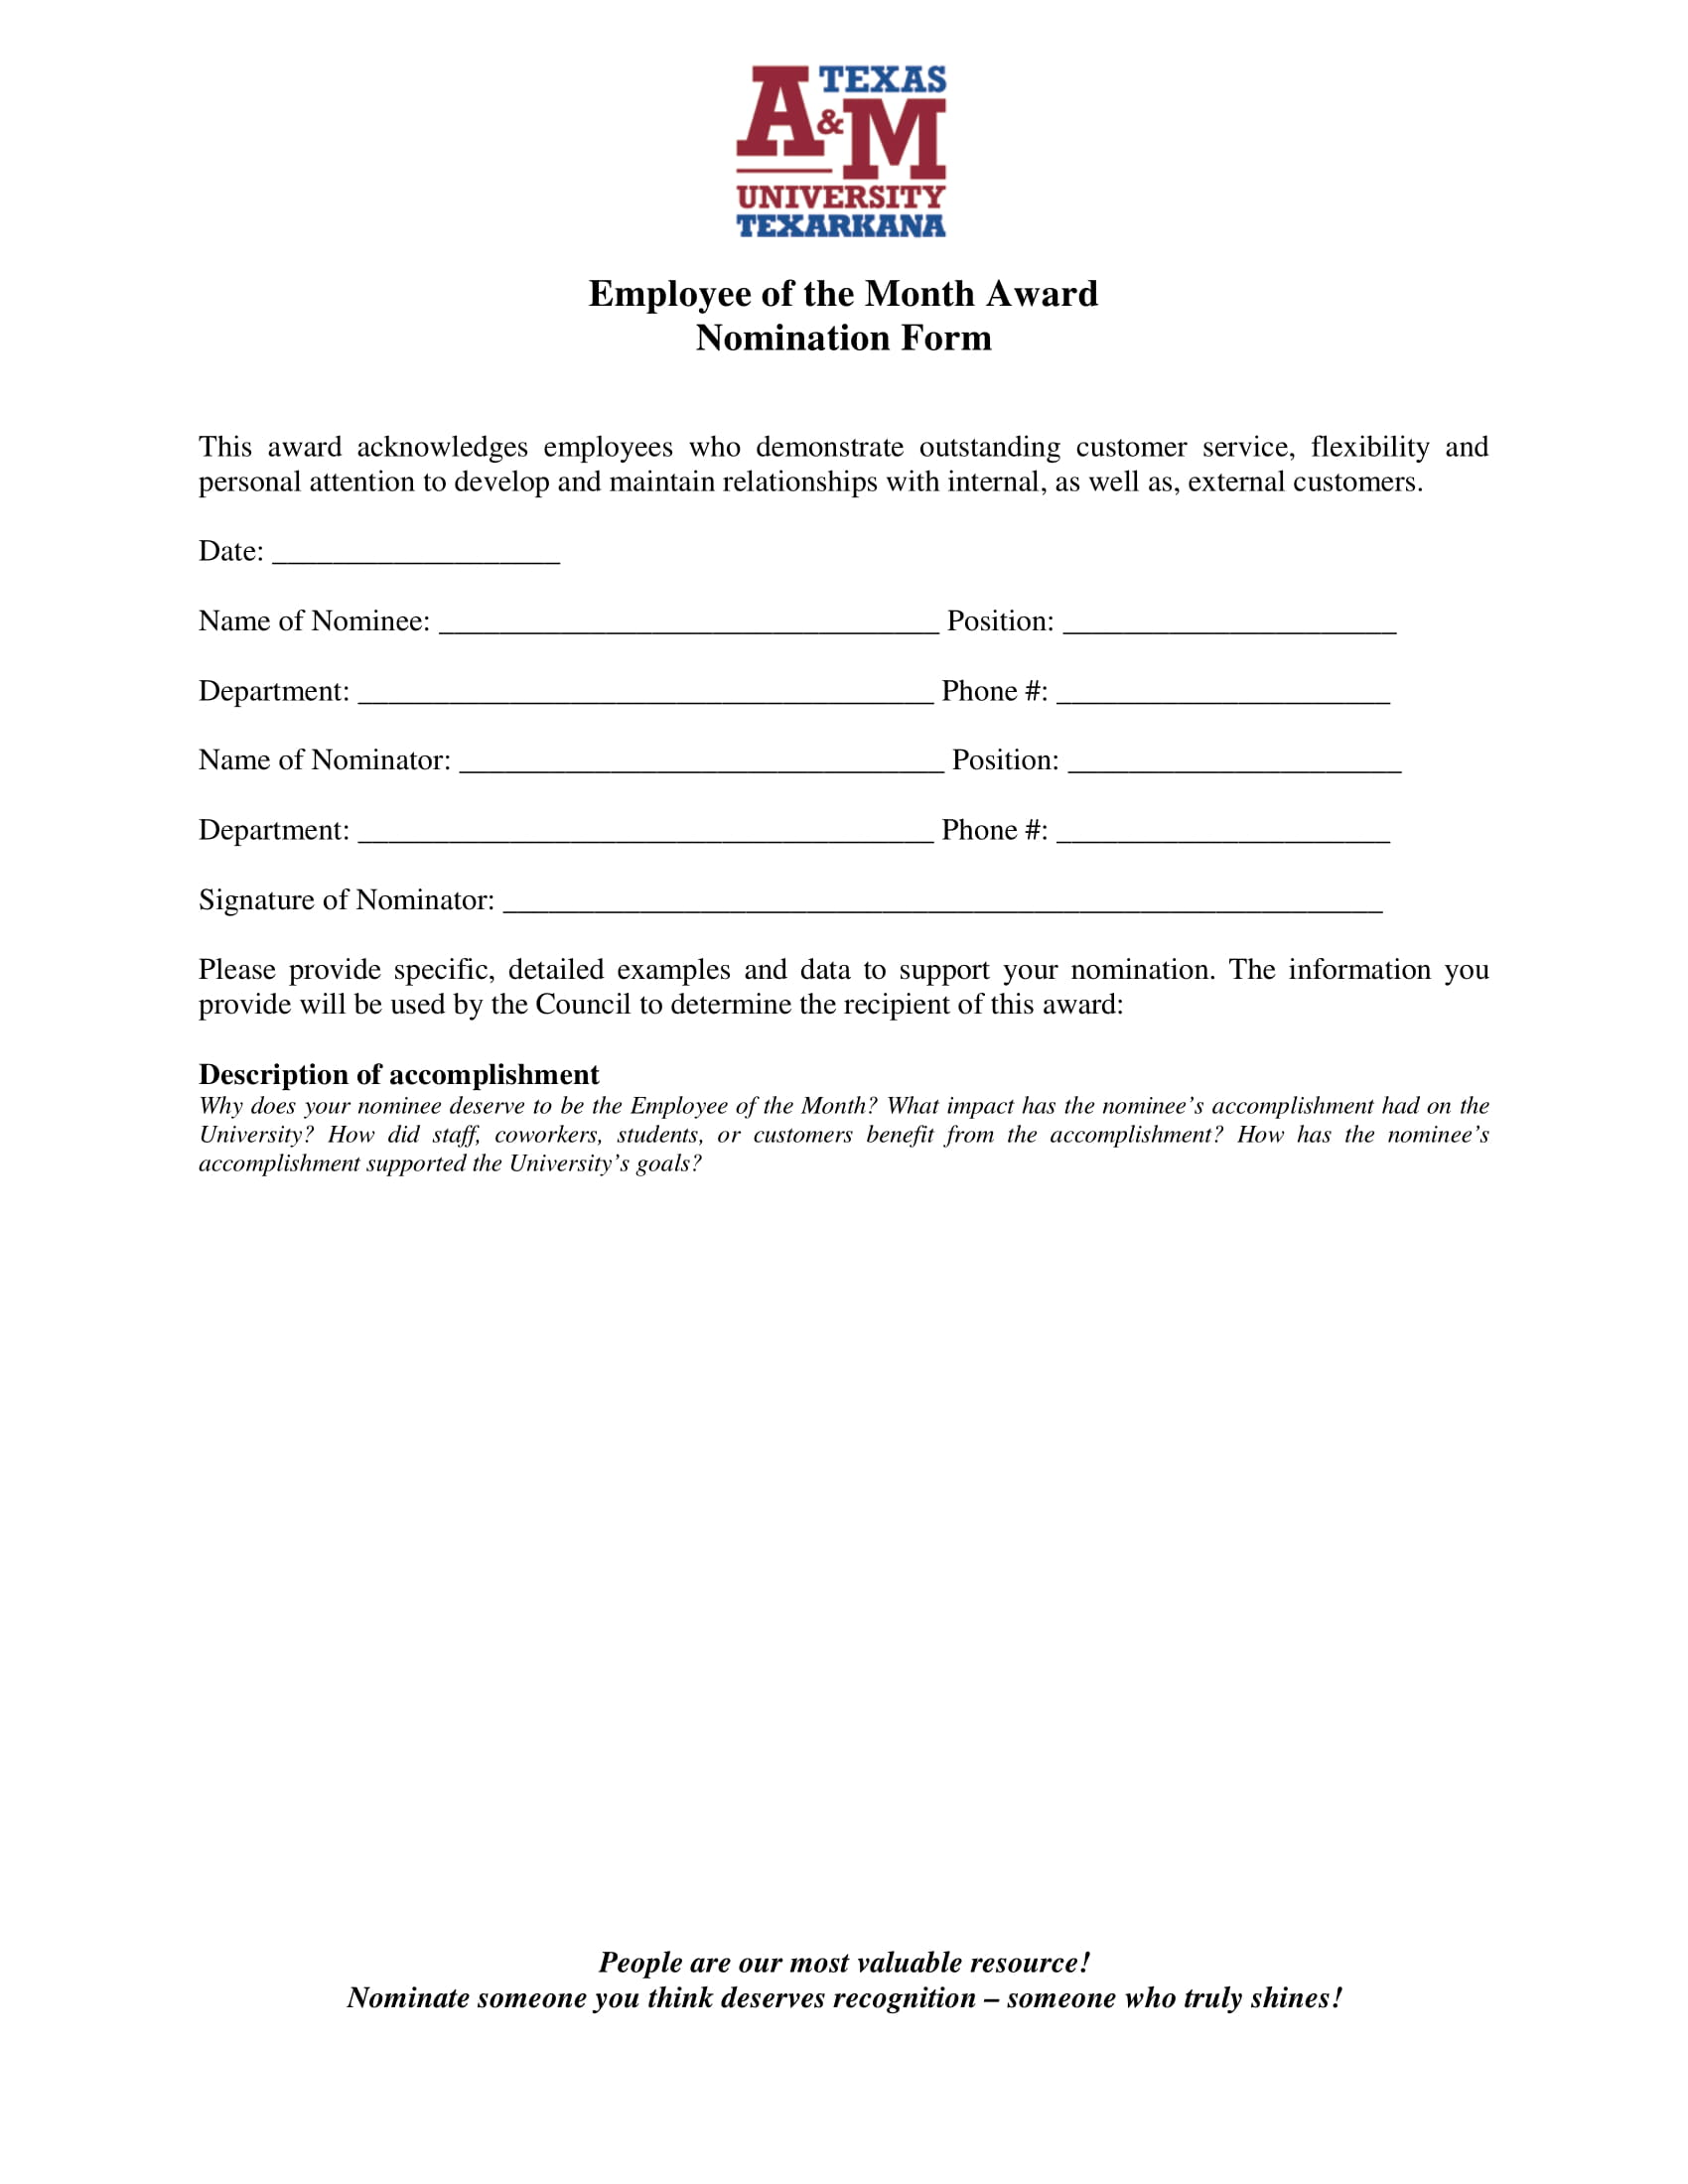 employee of the month award nomination form 1